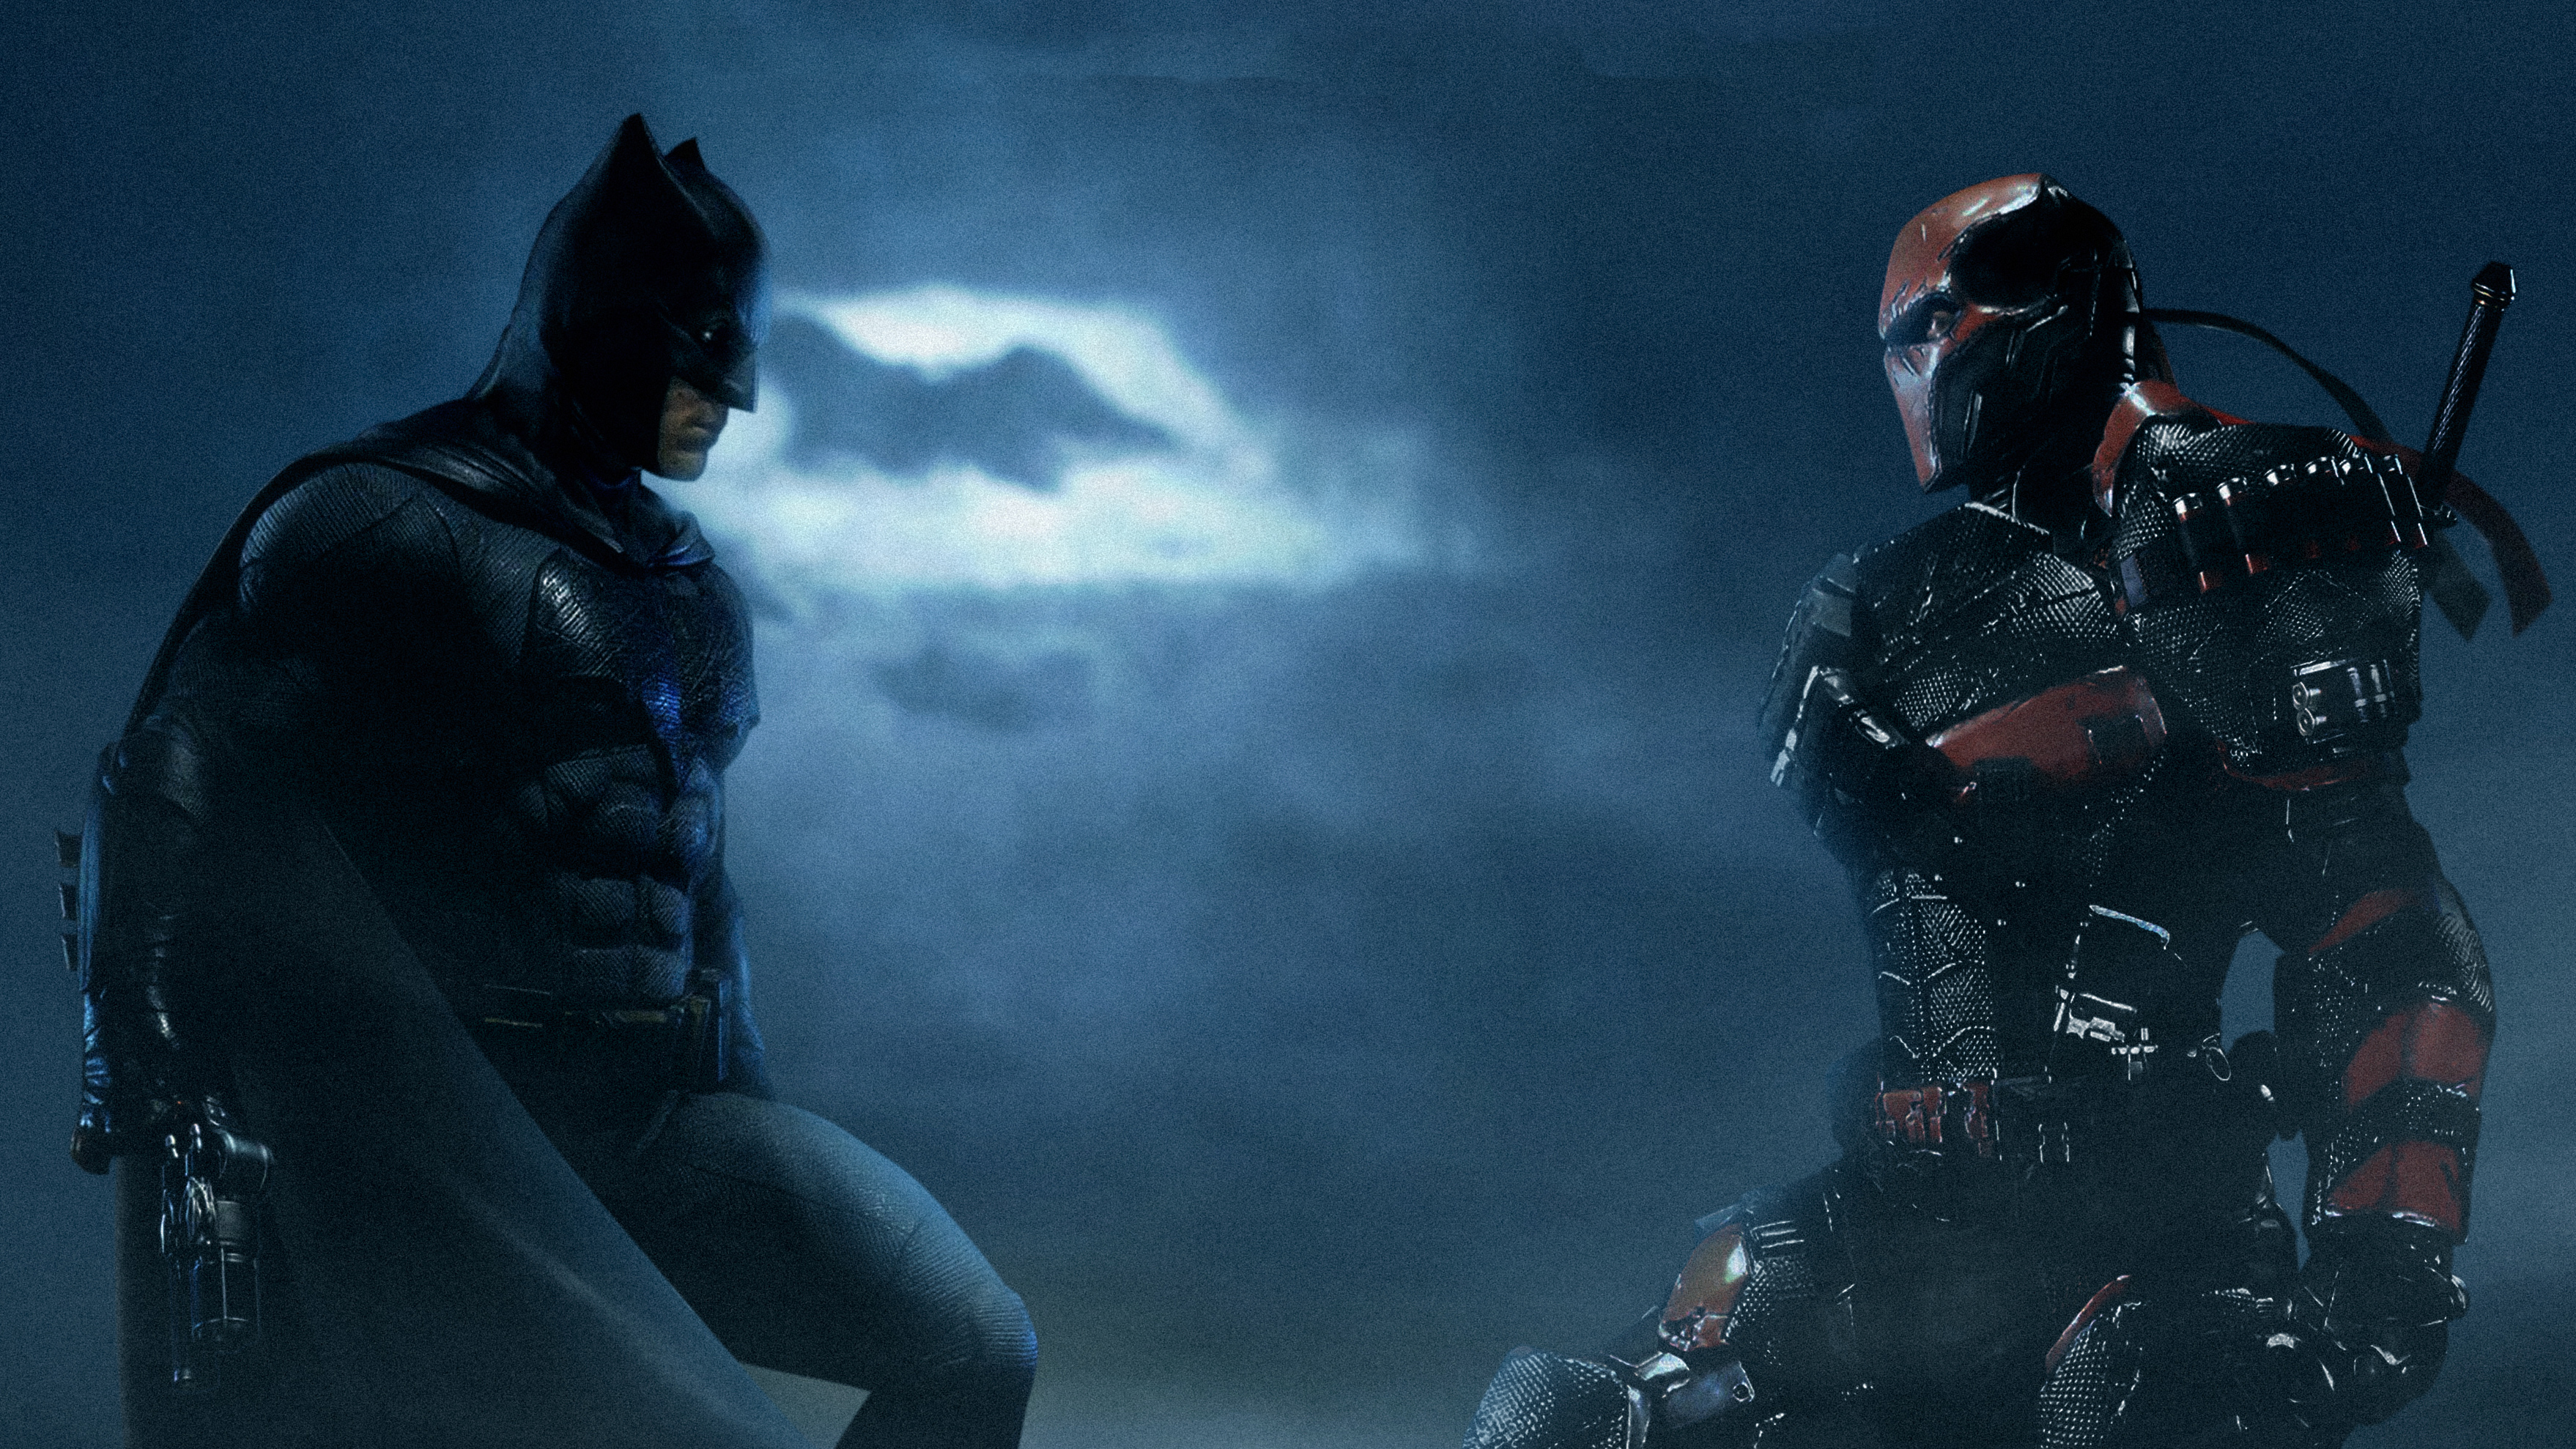 Batman Vs Deathstroke HD Superheroes 4k Wallpapers Images